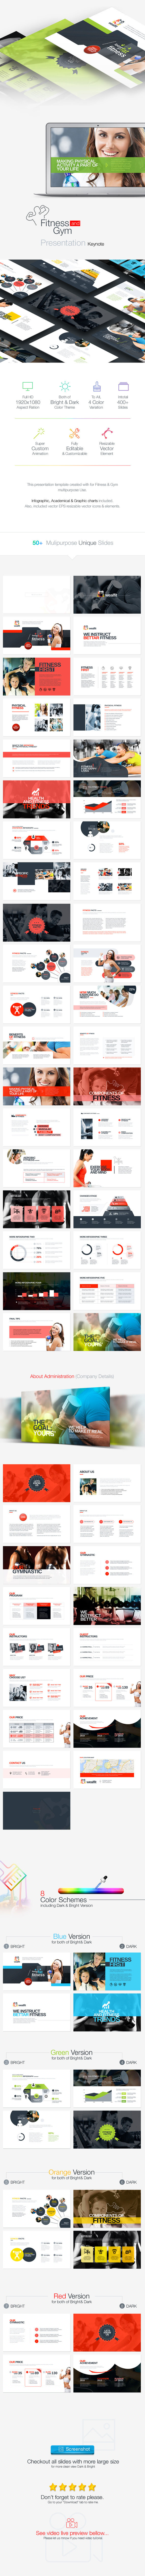 Graphicriver-Fitness-Gym-Weight-Lose-Physical-Fit-Business-Branding-Presentation-IP